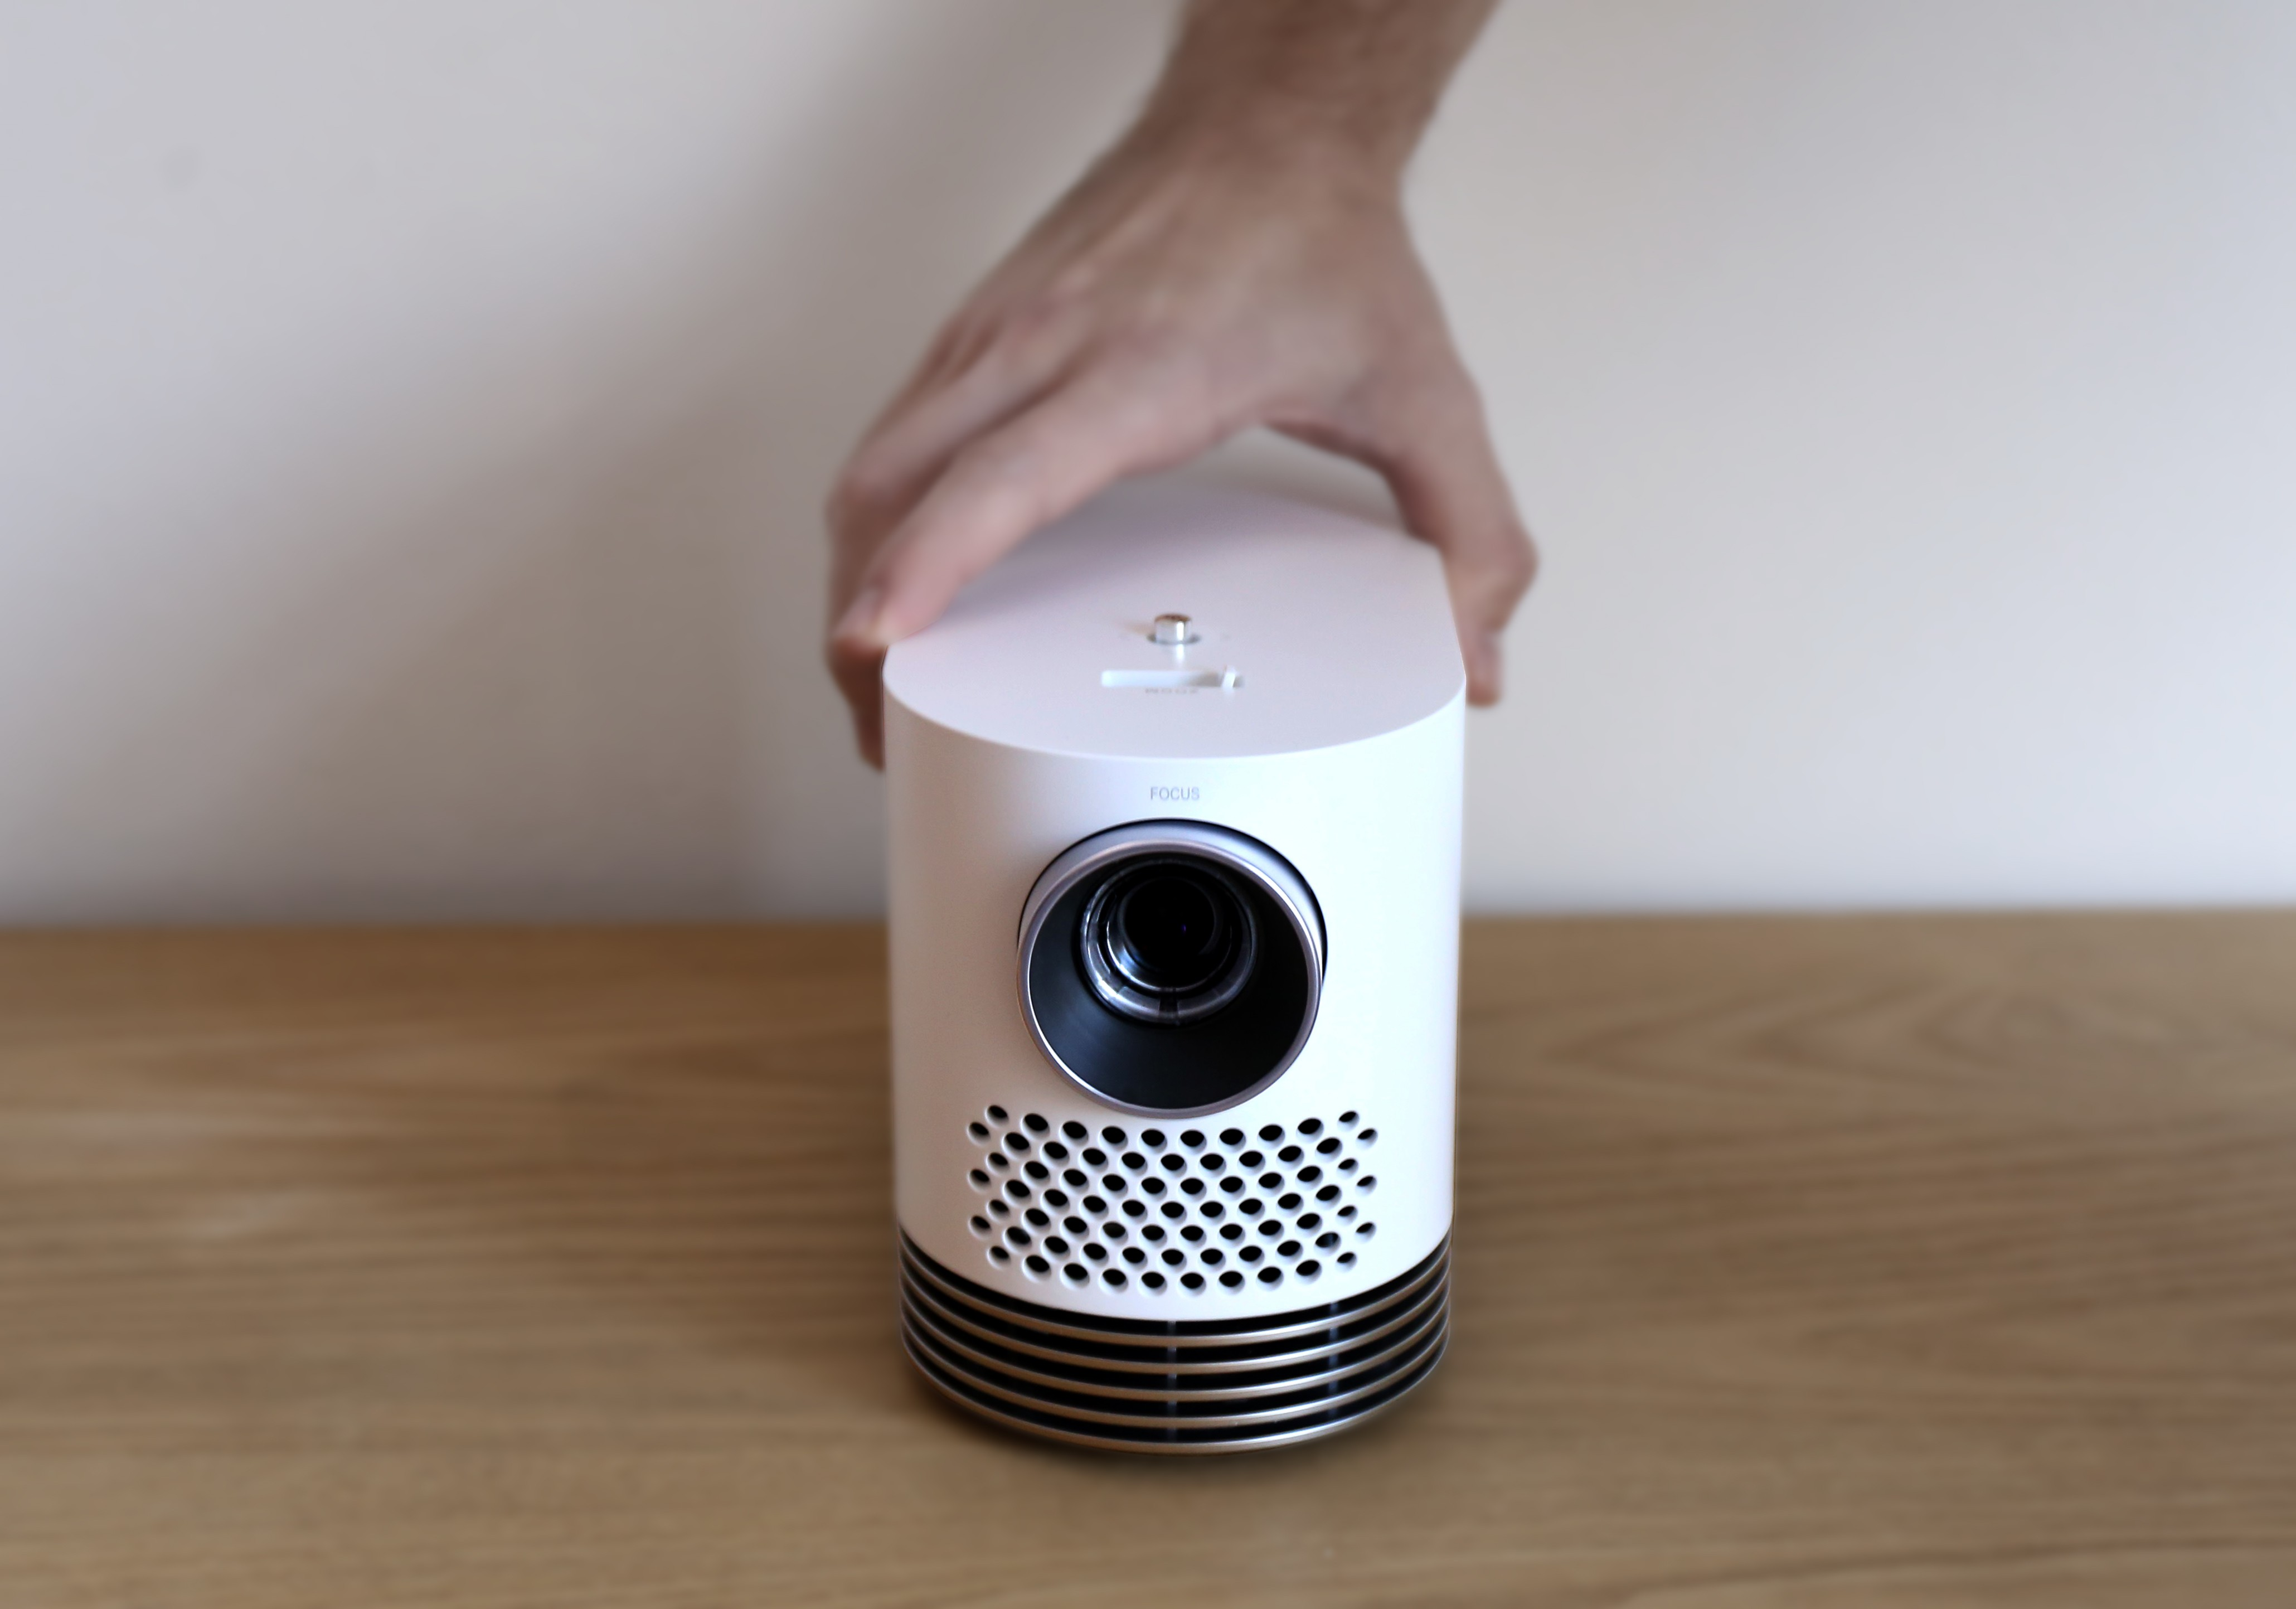 Front view of LG Probeam Laser Projector (model HF80J) being put on the desk by a man's hand